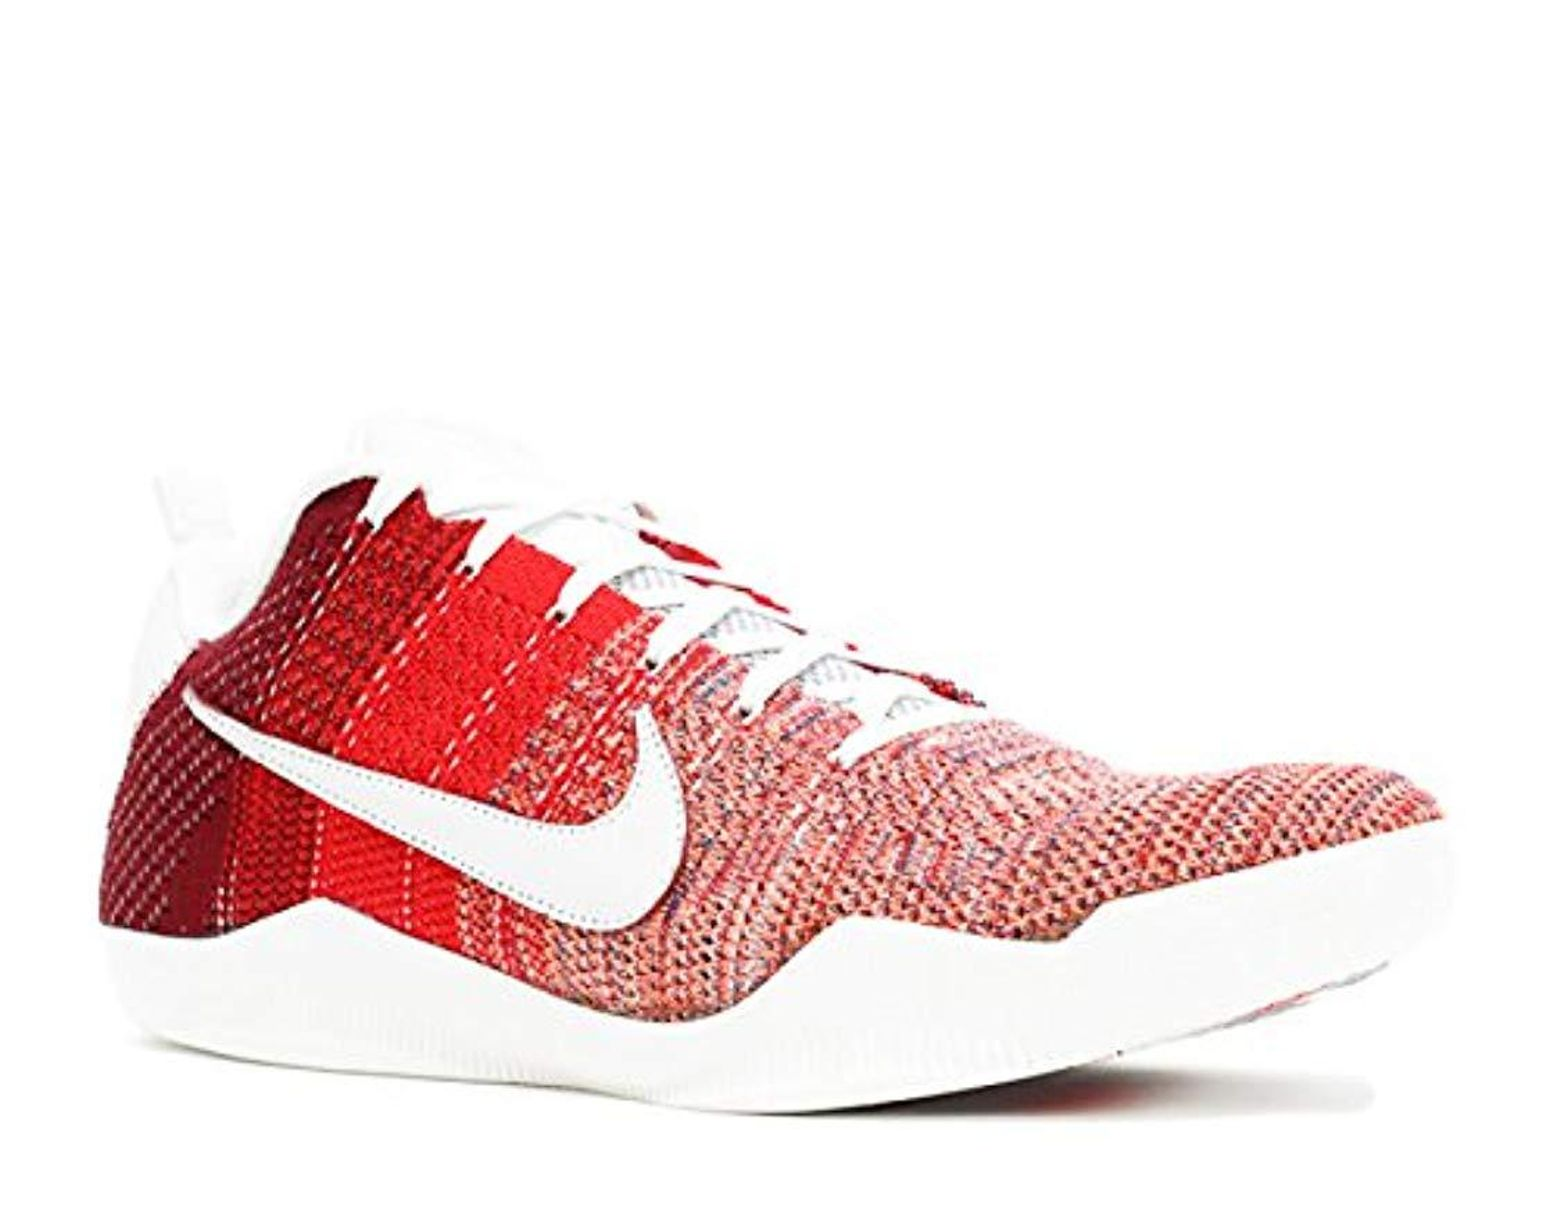 cheaper 8f397 4f9fd Nike Kobe Xi Elite Low 4kb Basketball Shoes in Red for Men ...